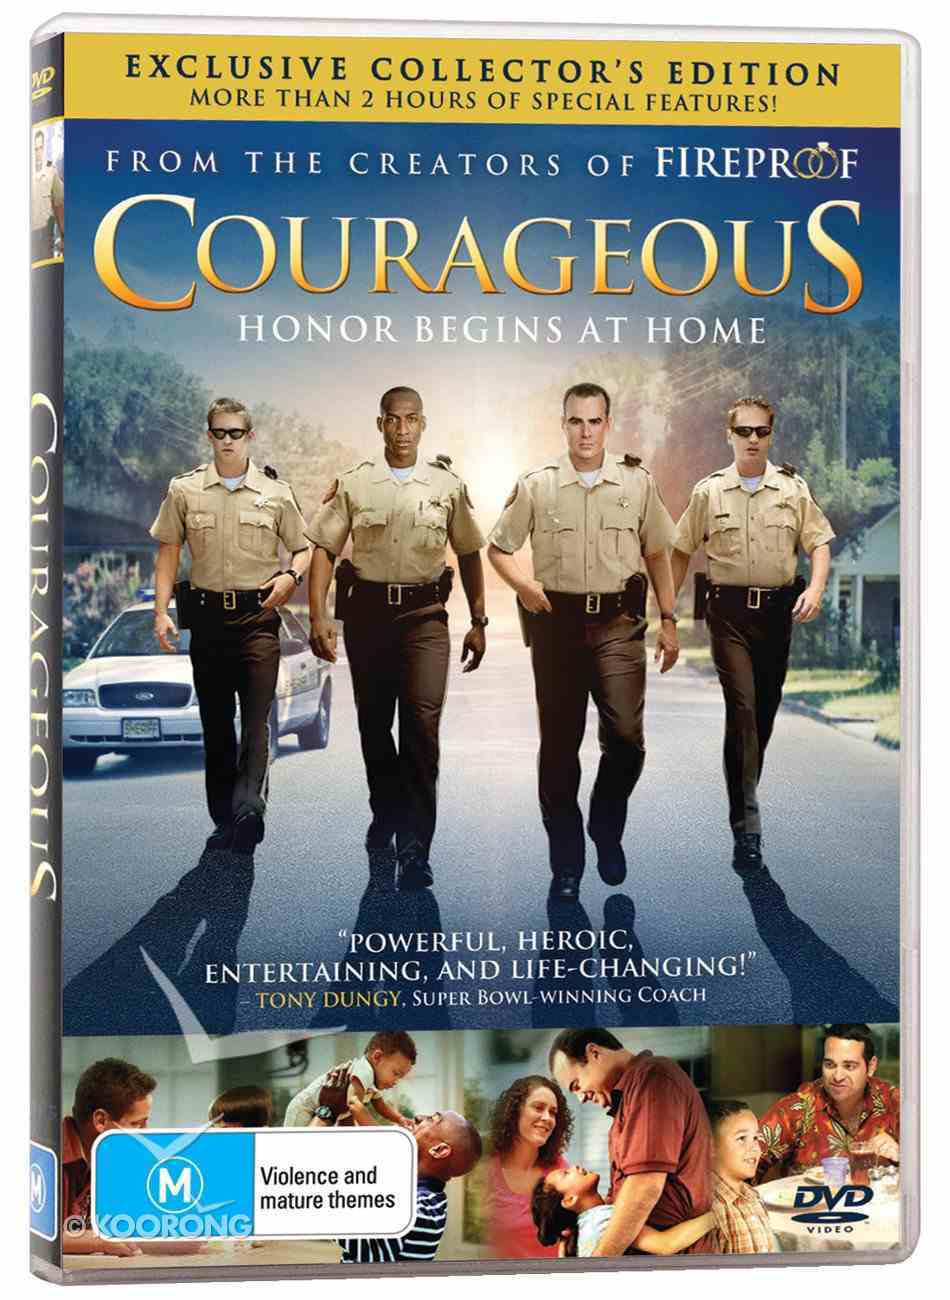 Courageous (Collector's Edition) (Courageous Series) DVD